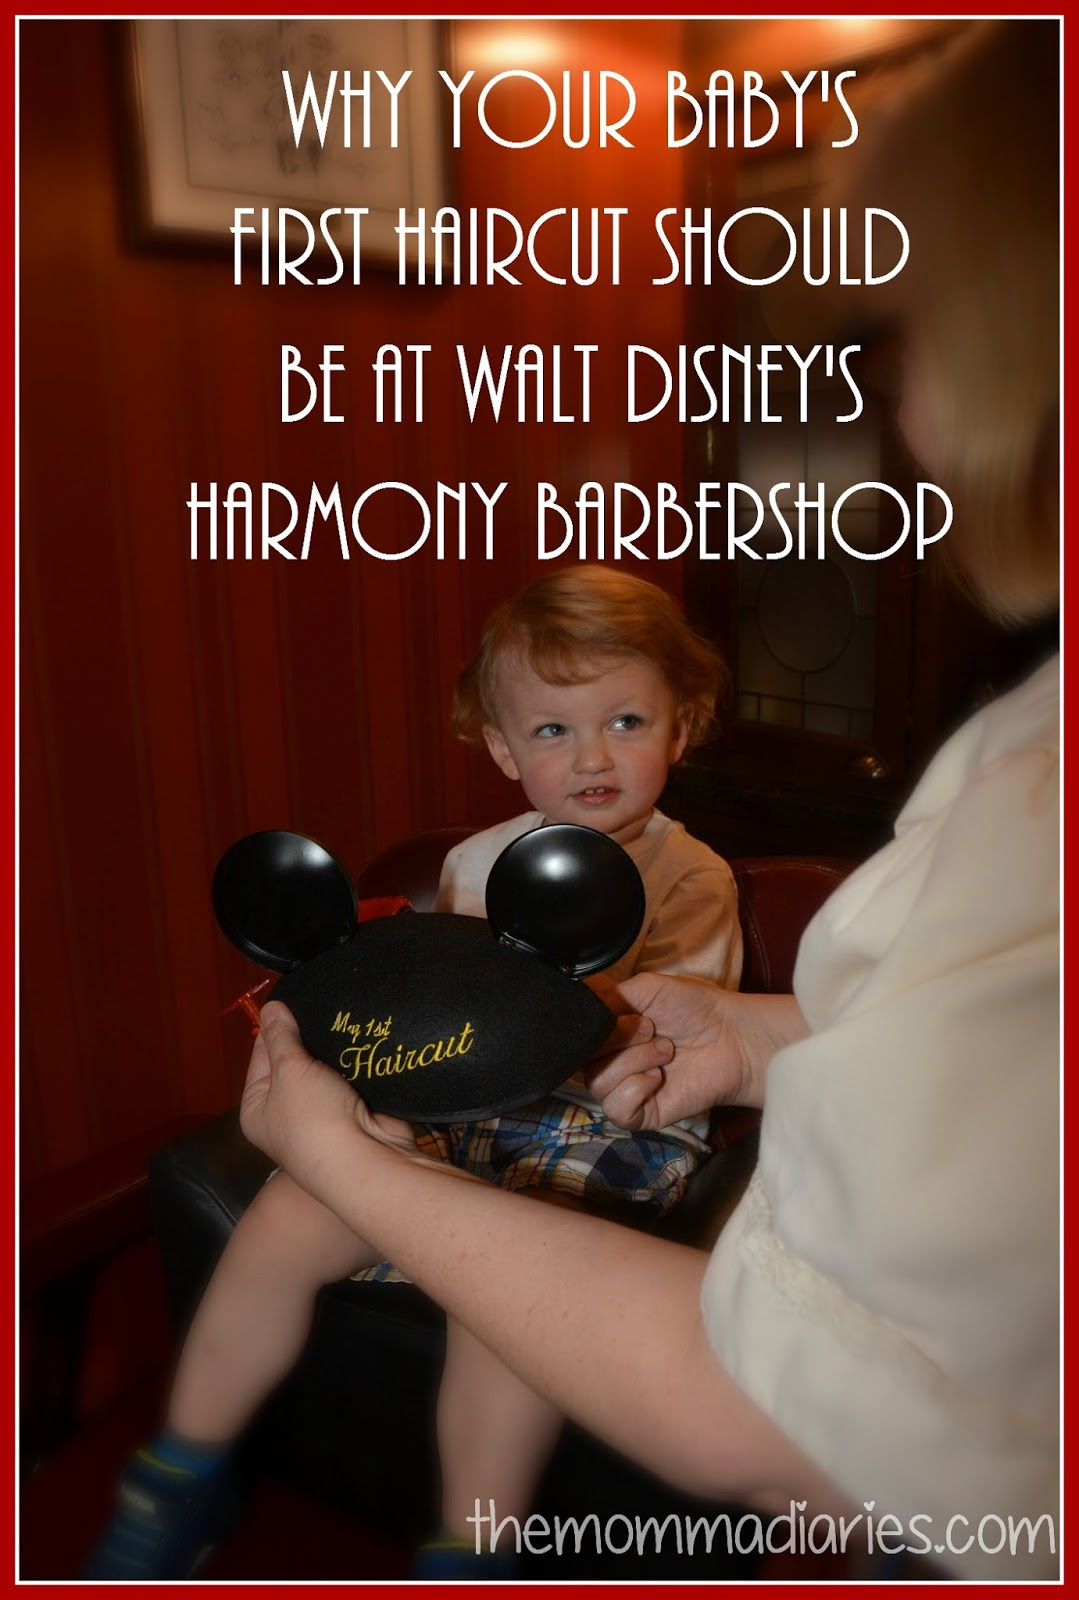 Why Your Babys First Haircut Should Be At Walt Disneys Harmony